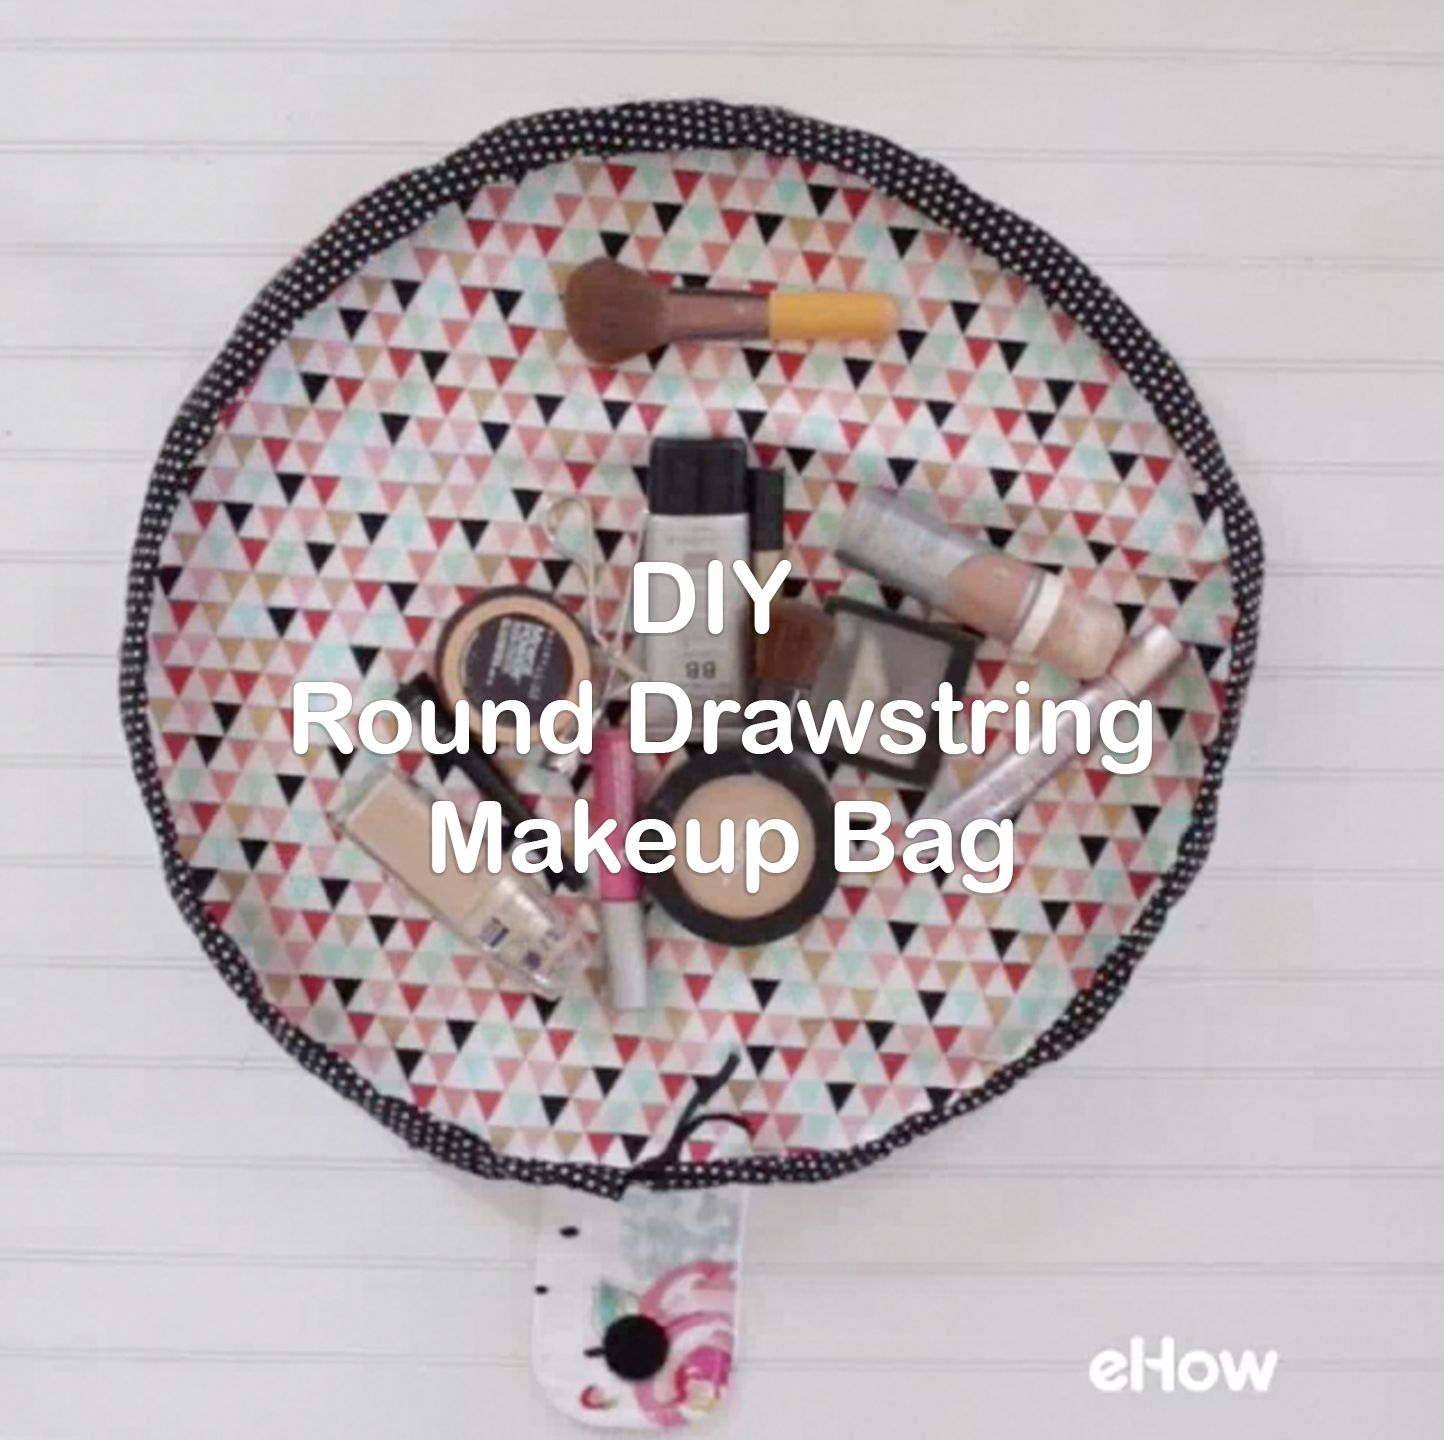 DIY Round Drawstring Makeup Bag – Fashion blogger